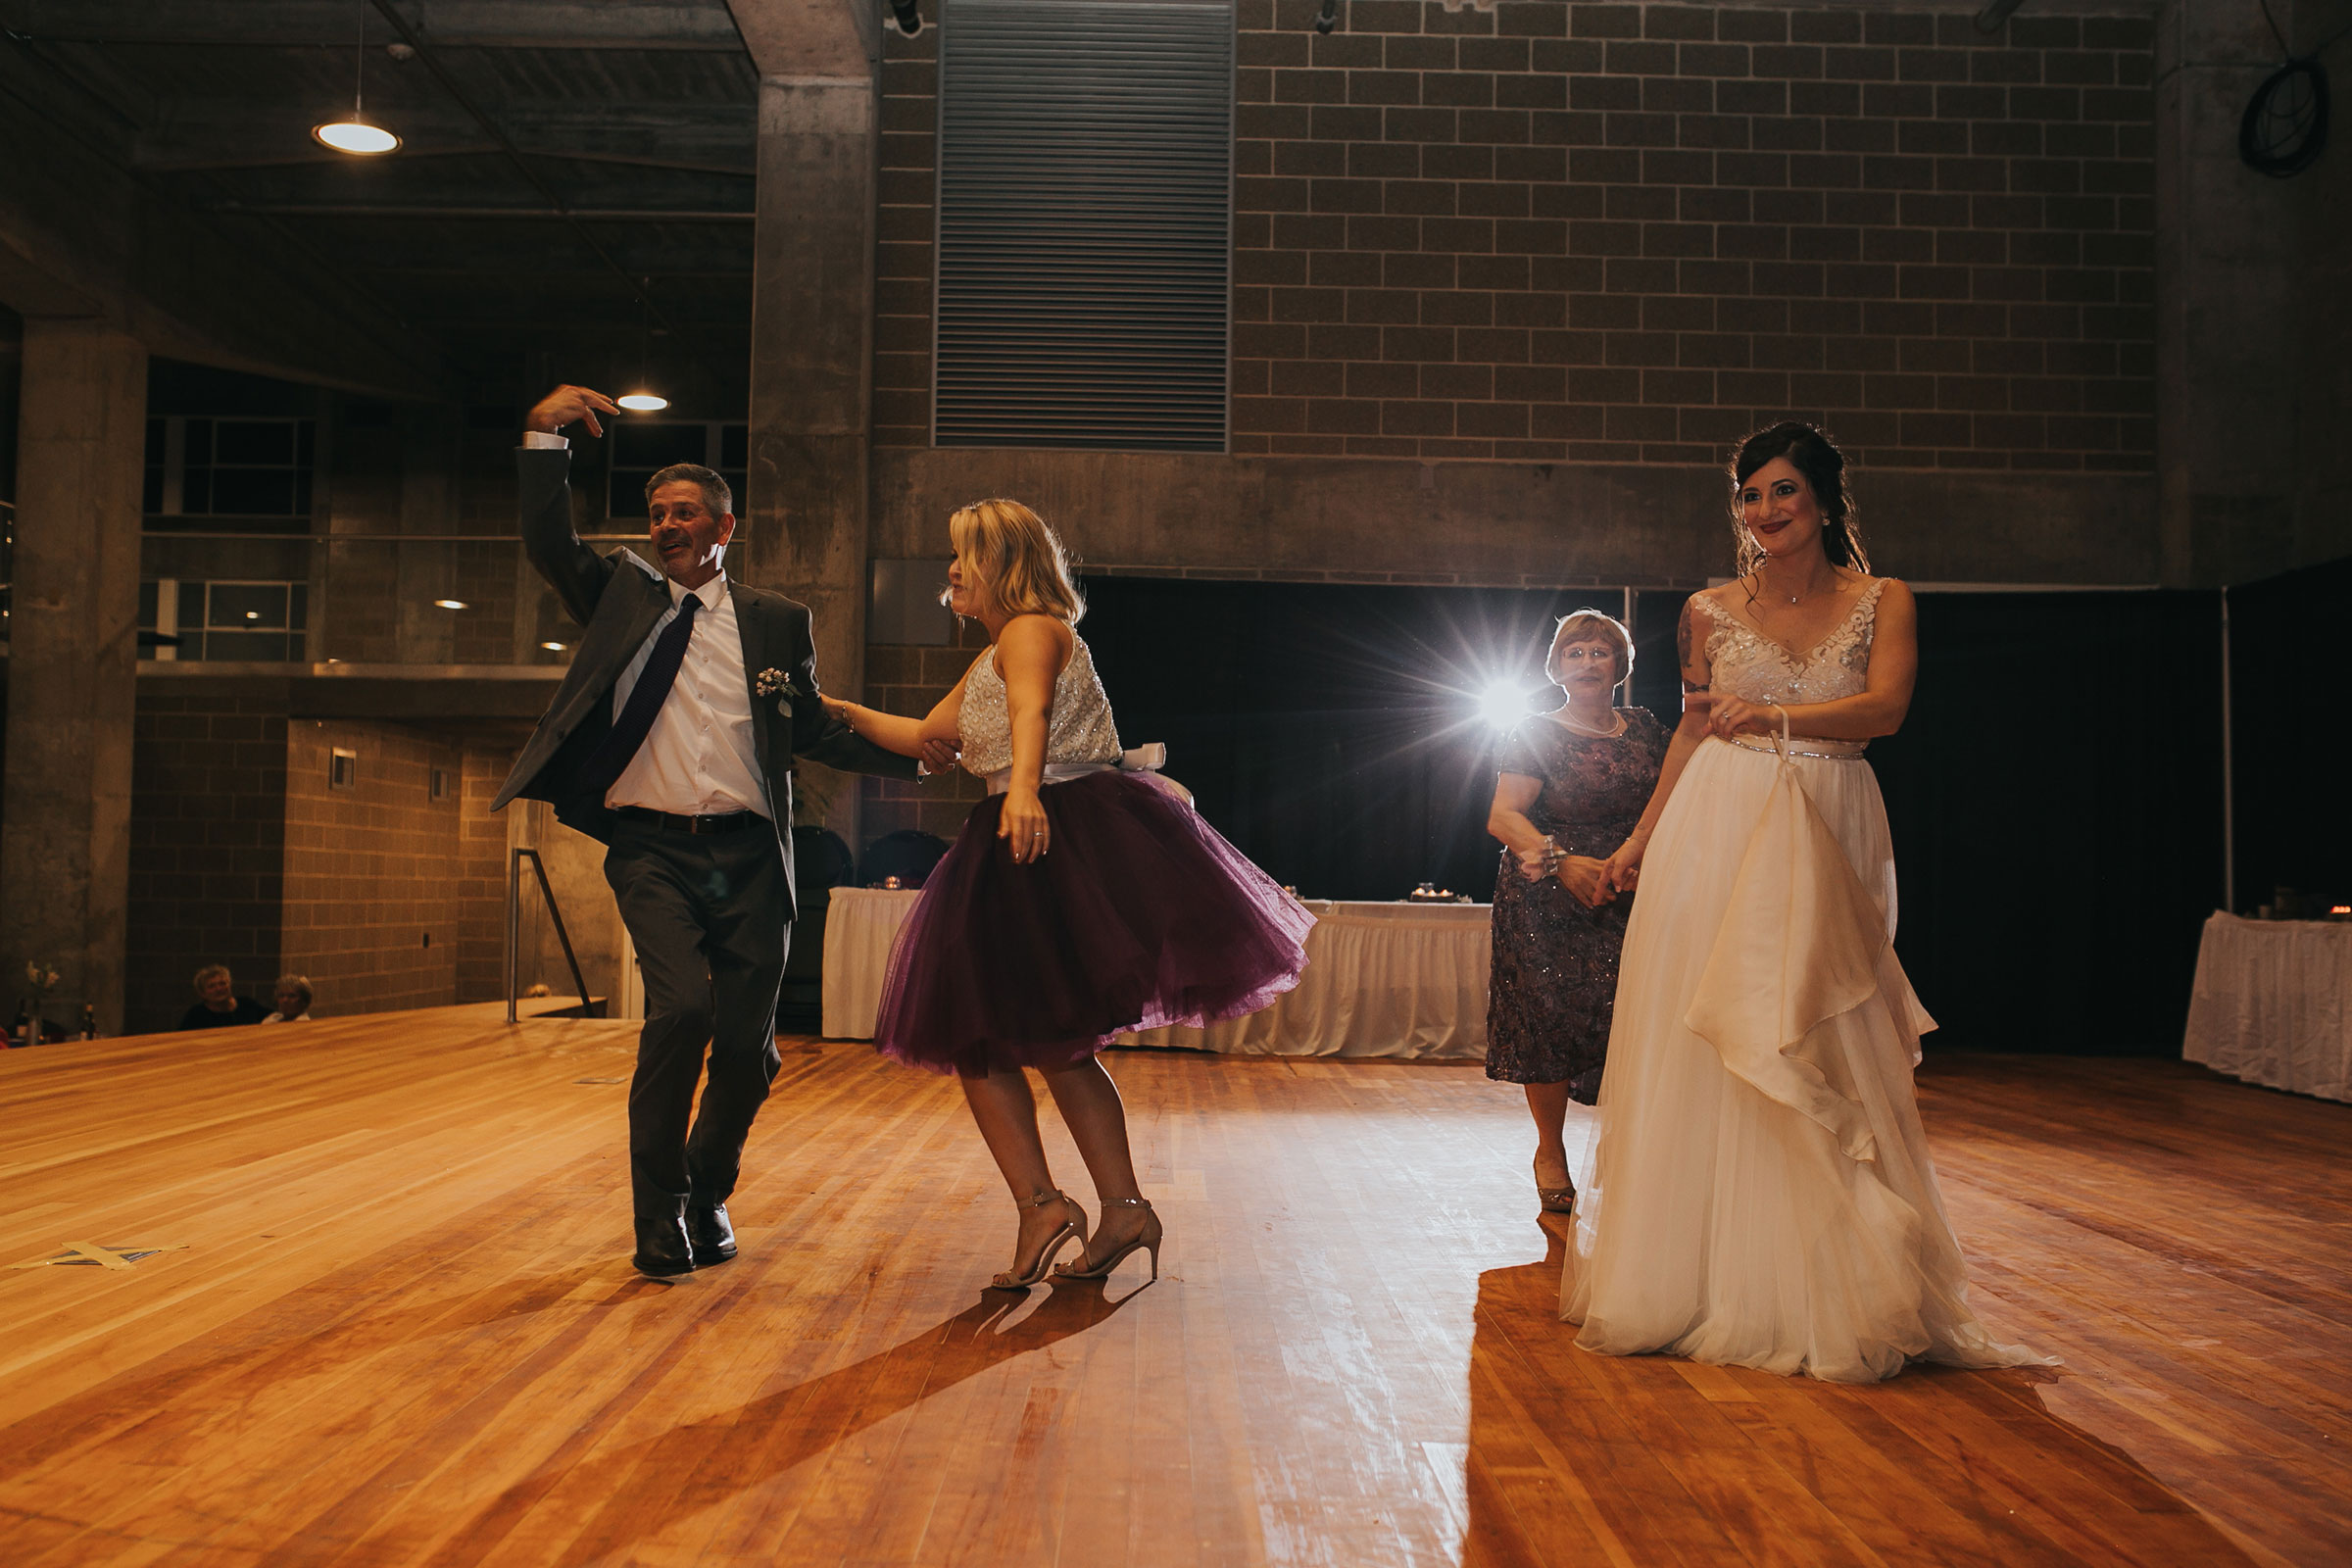 brides-first-dance-with-family-at-reception-pella-plaza-desmoines-iowa-raelyn-ramey-photography.jpg